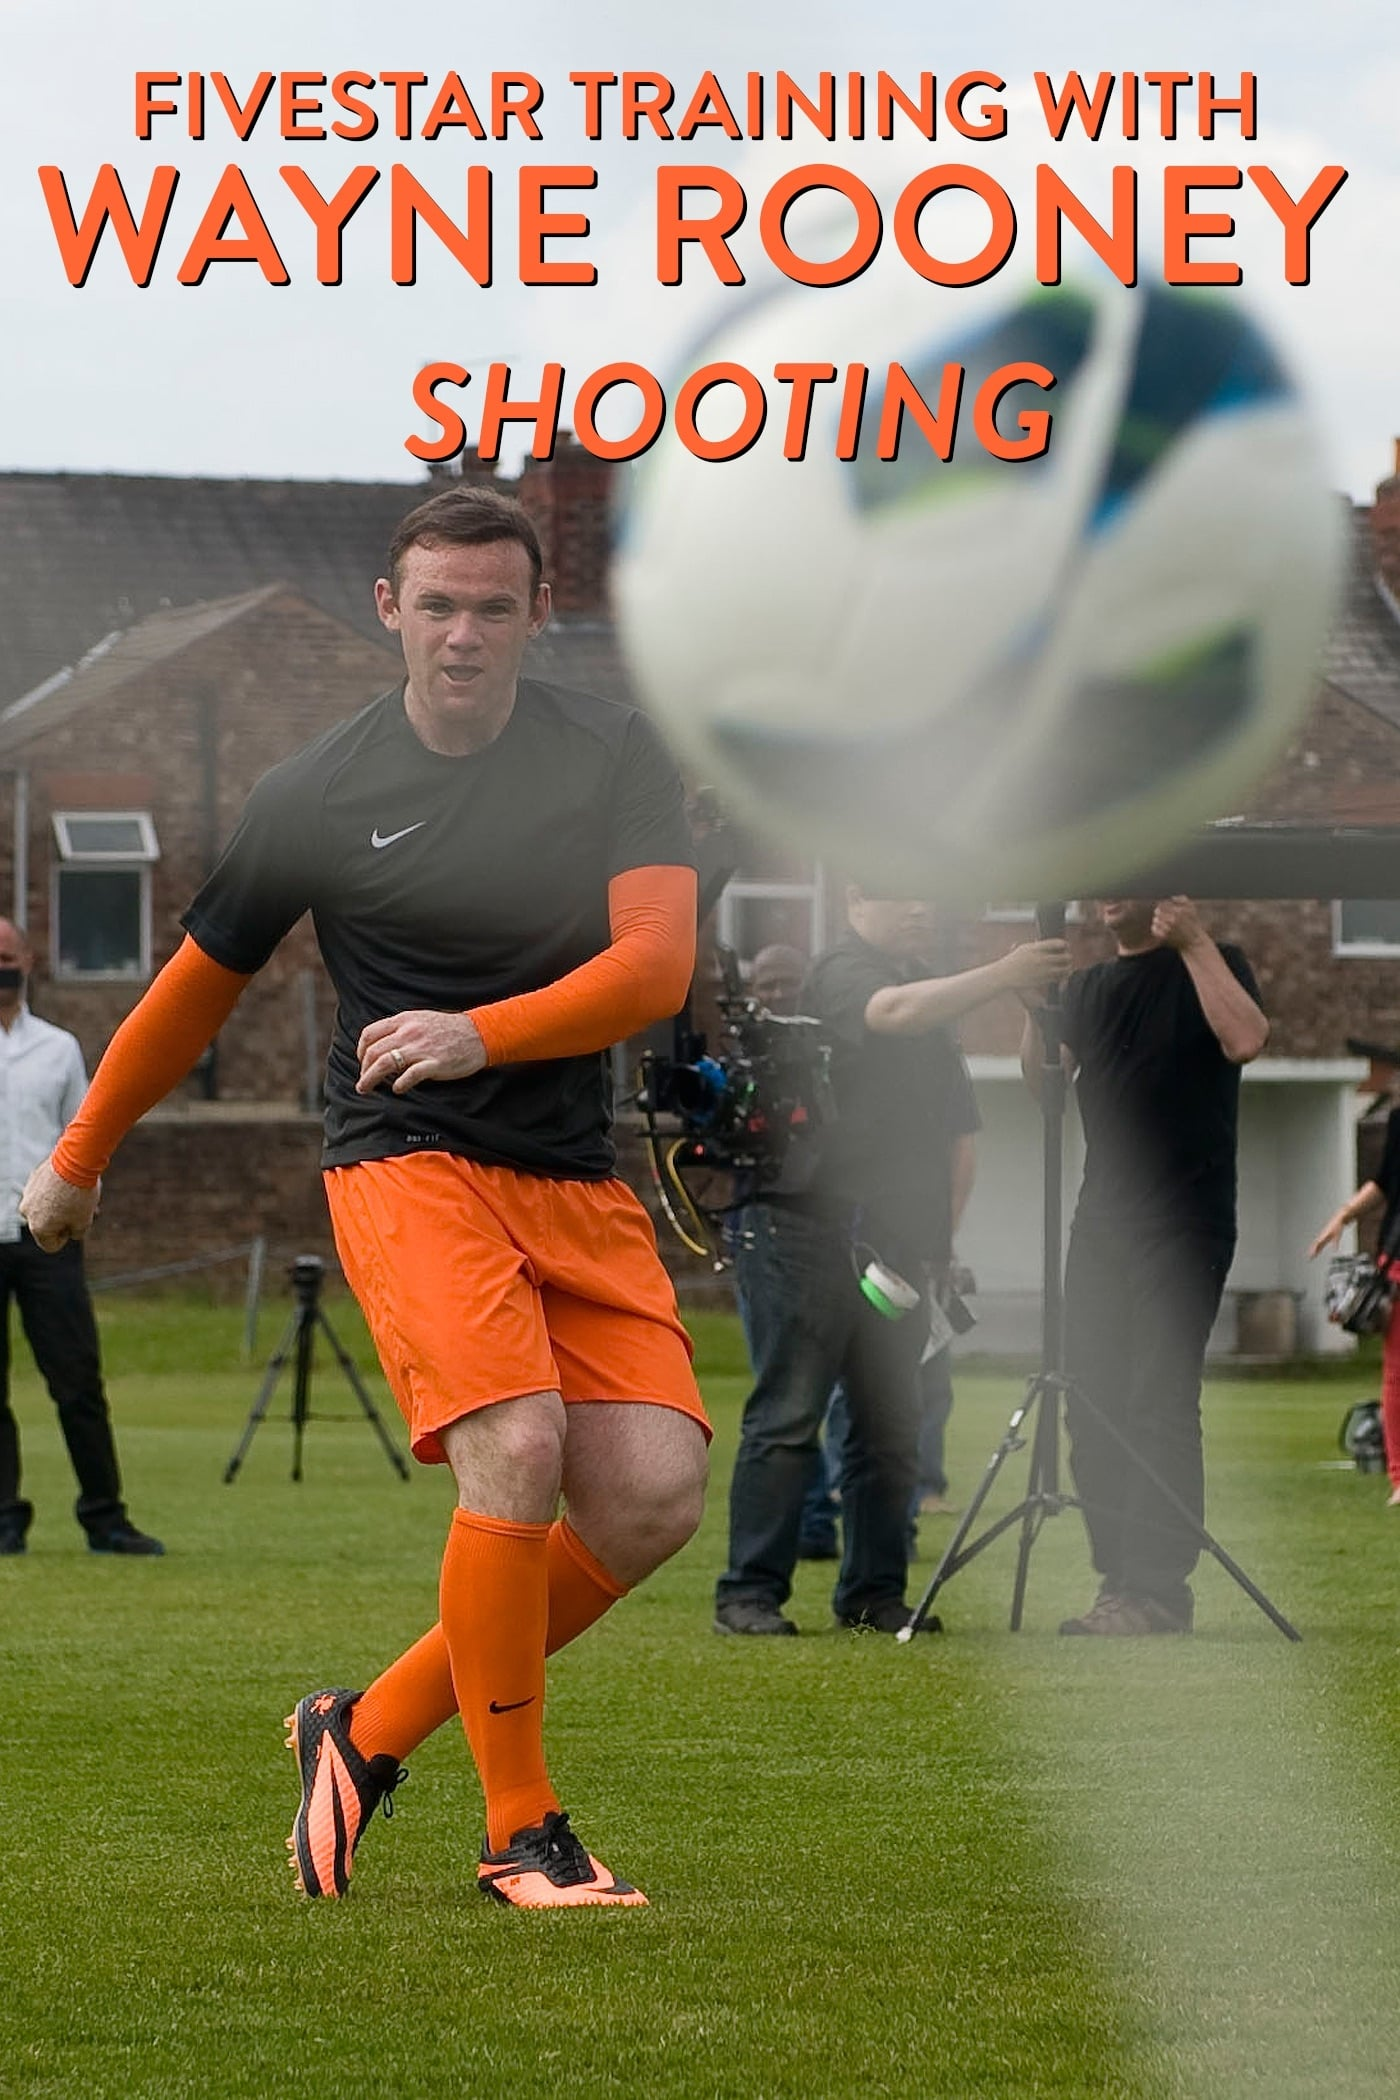 Fivestar Training with Wayne Rooney: Shooting on FREECABLE TV